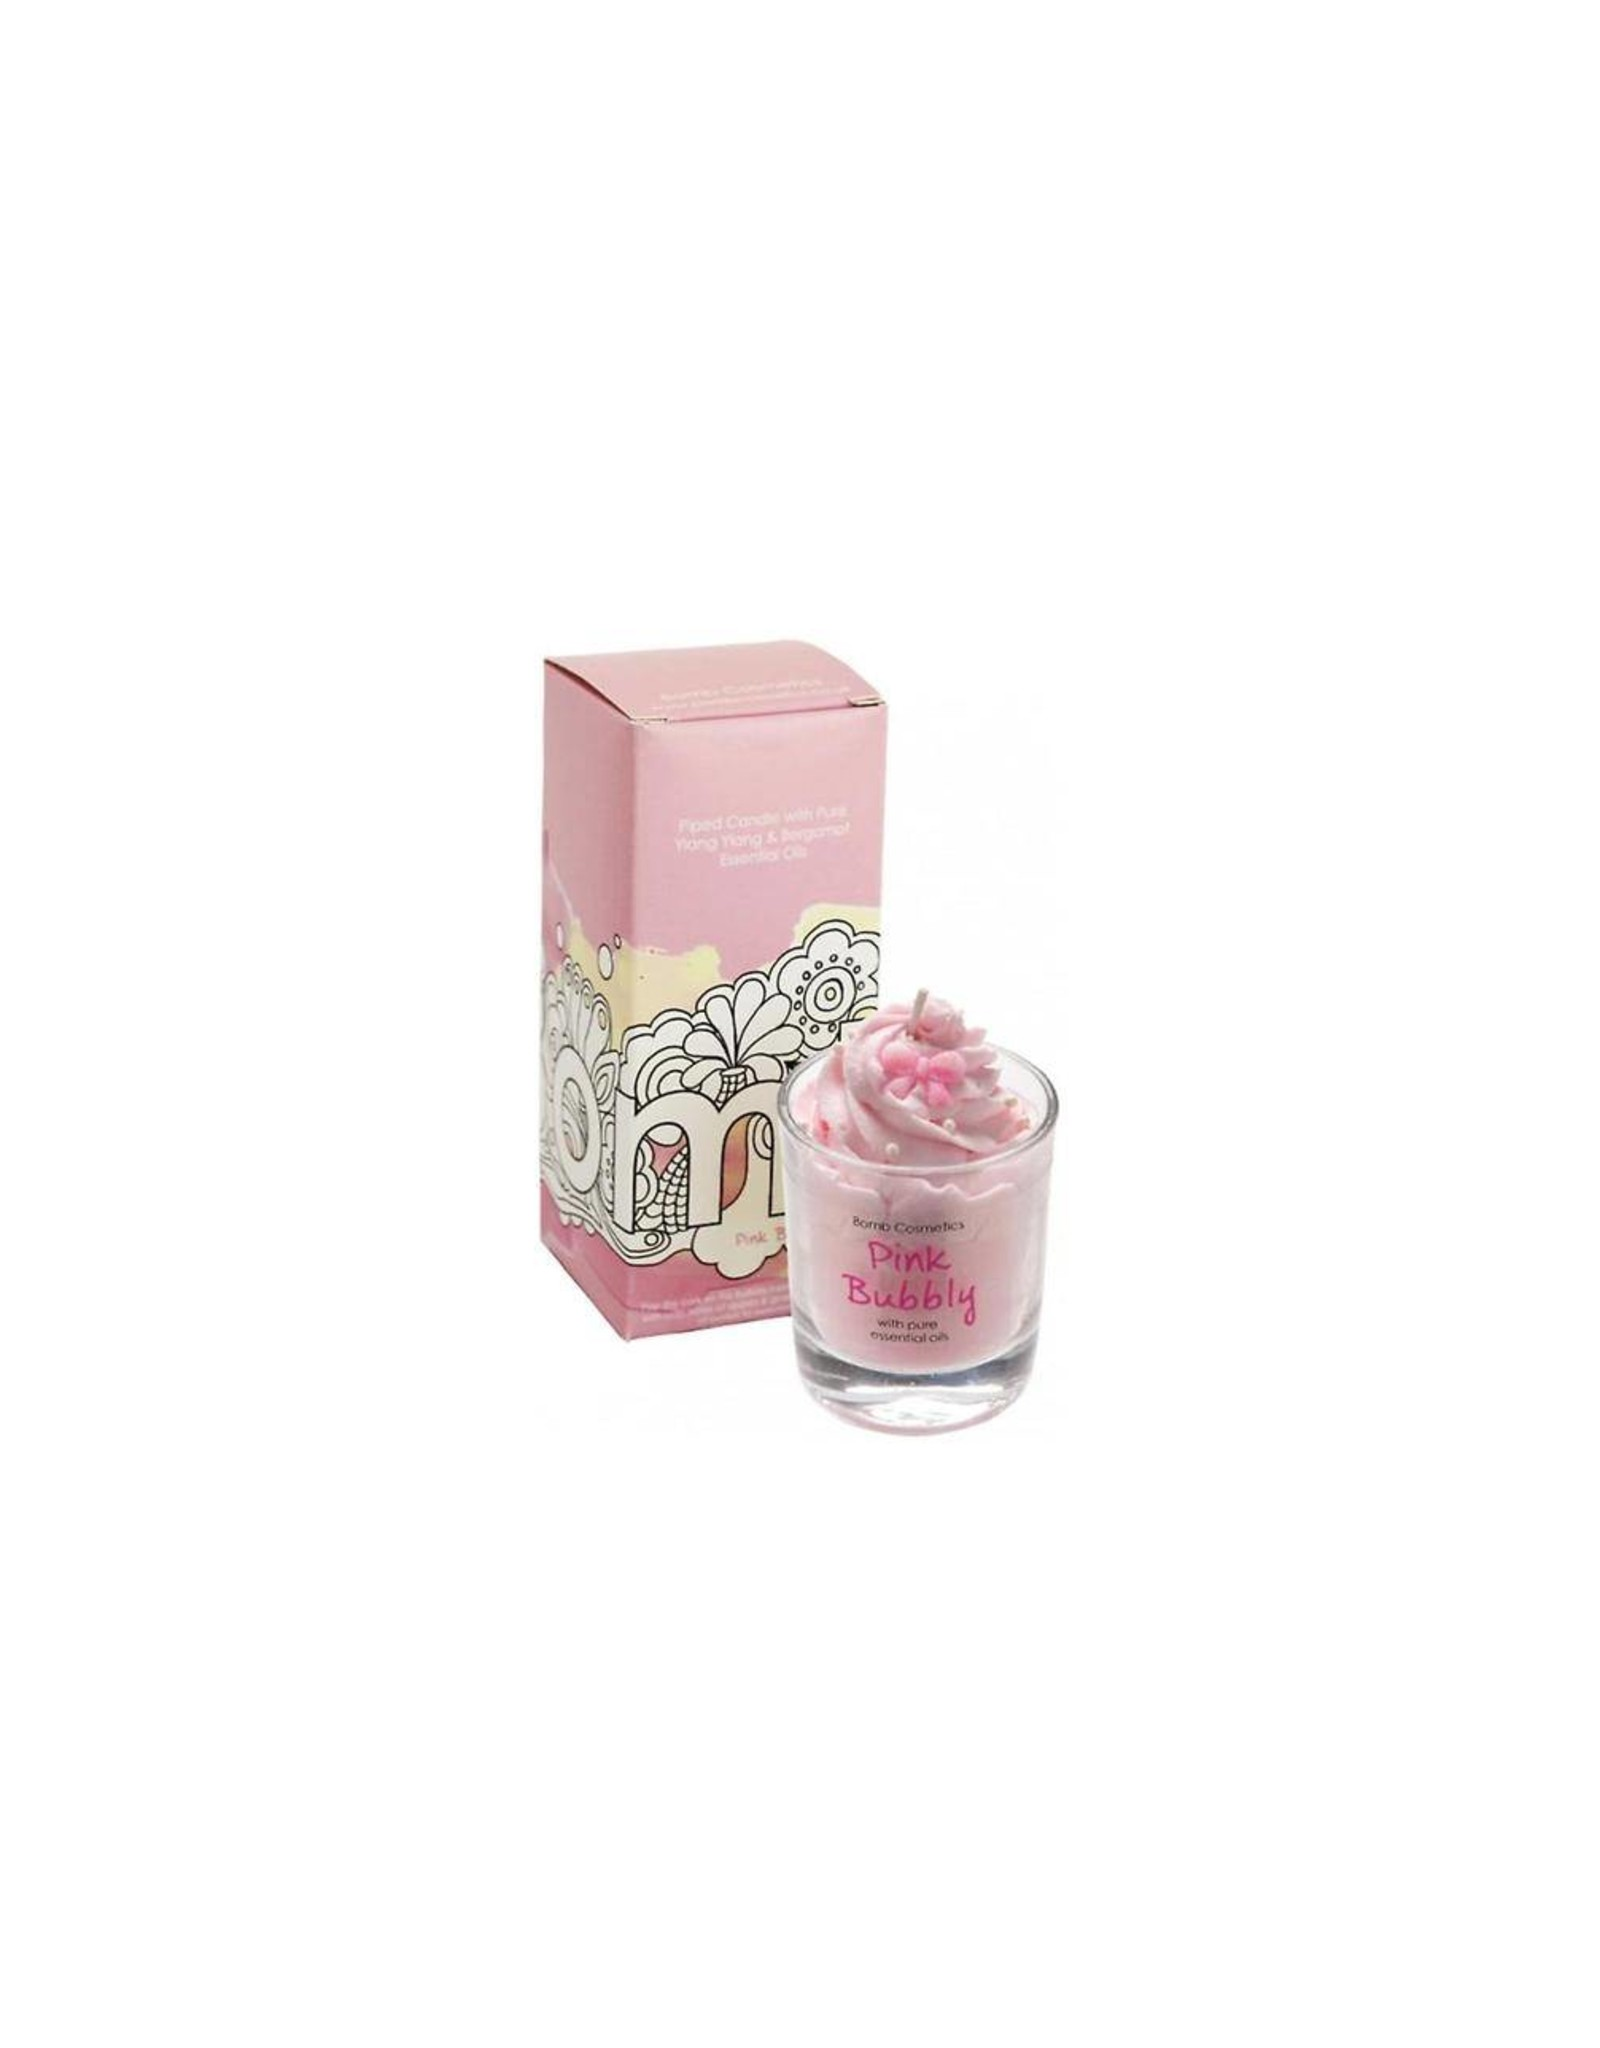 Bomb Cosmetics Geurkaars 'Pink Bubbly Whipped Piped Candle' - Body & Soap